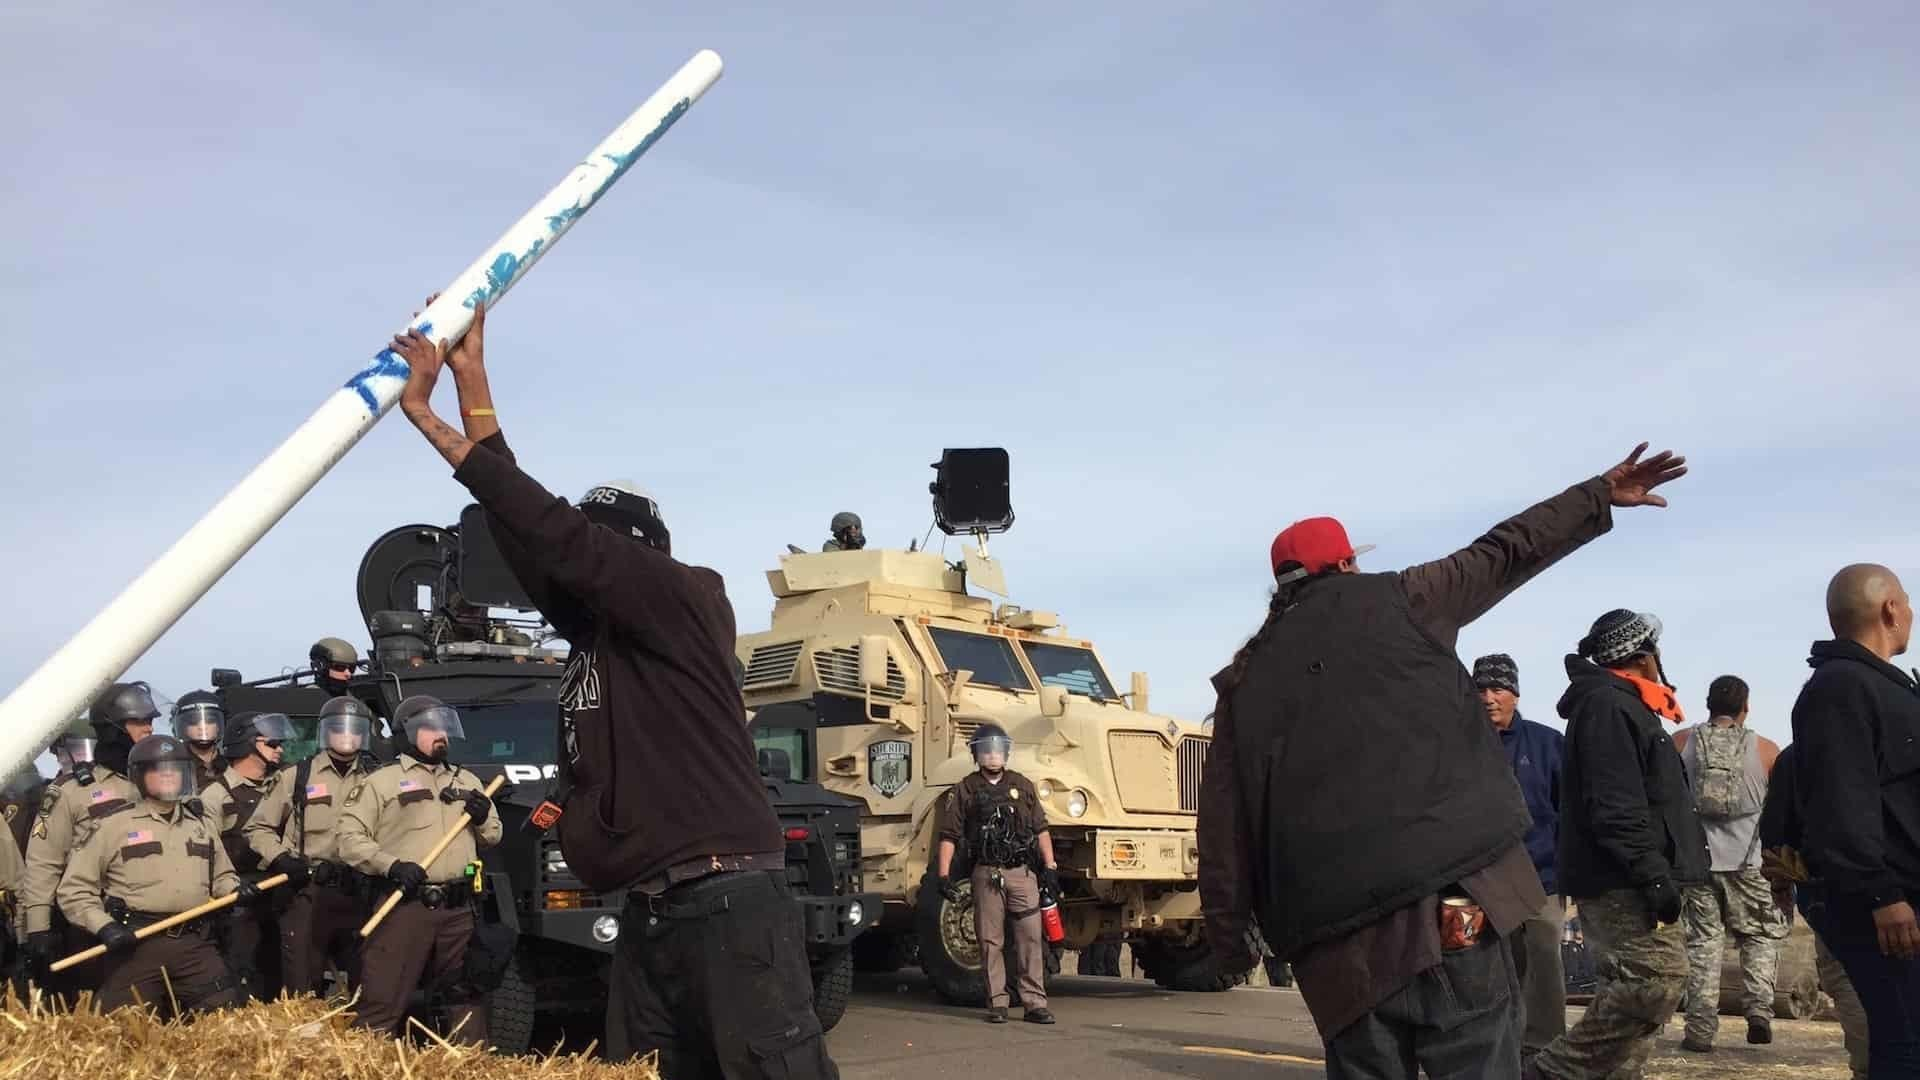 Tensions rise at Standing Rock as protesters clash with cops over the Dakota Access Pipeline project